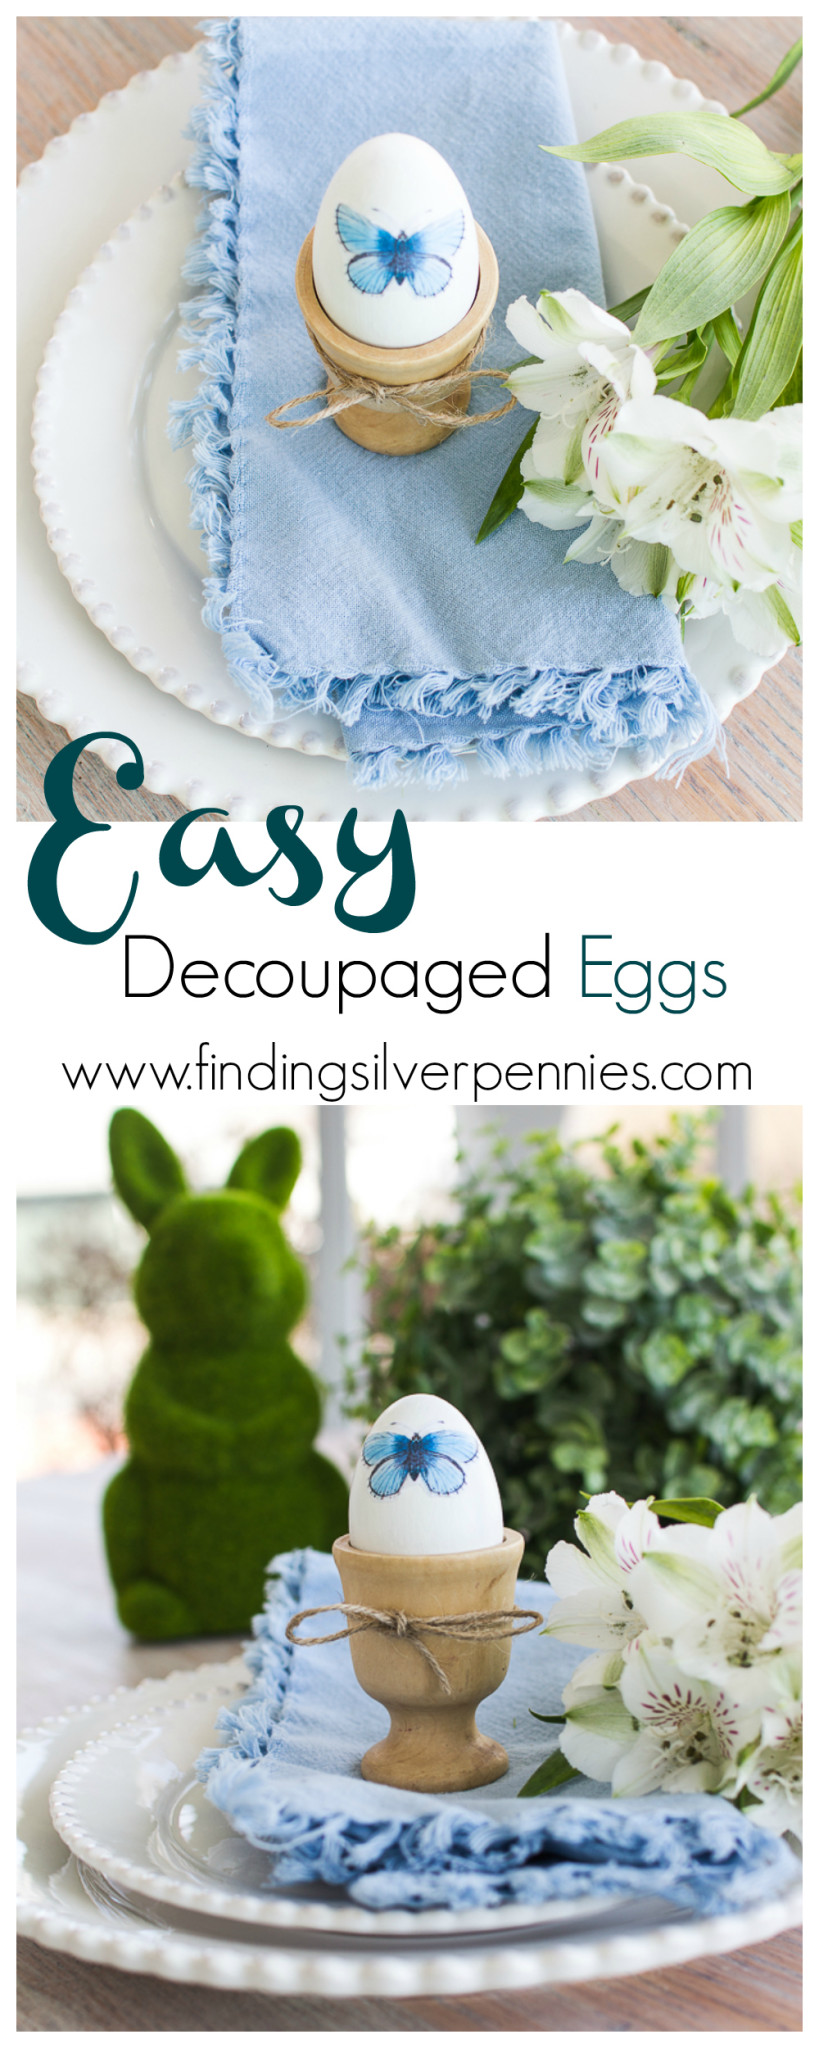 How to Make Easy Decoupaged Eggs